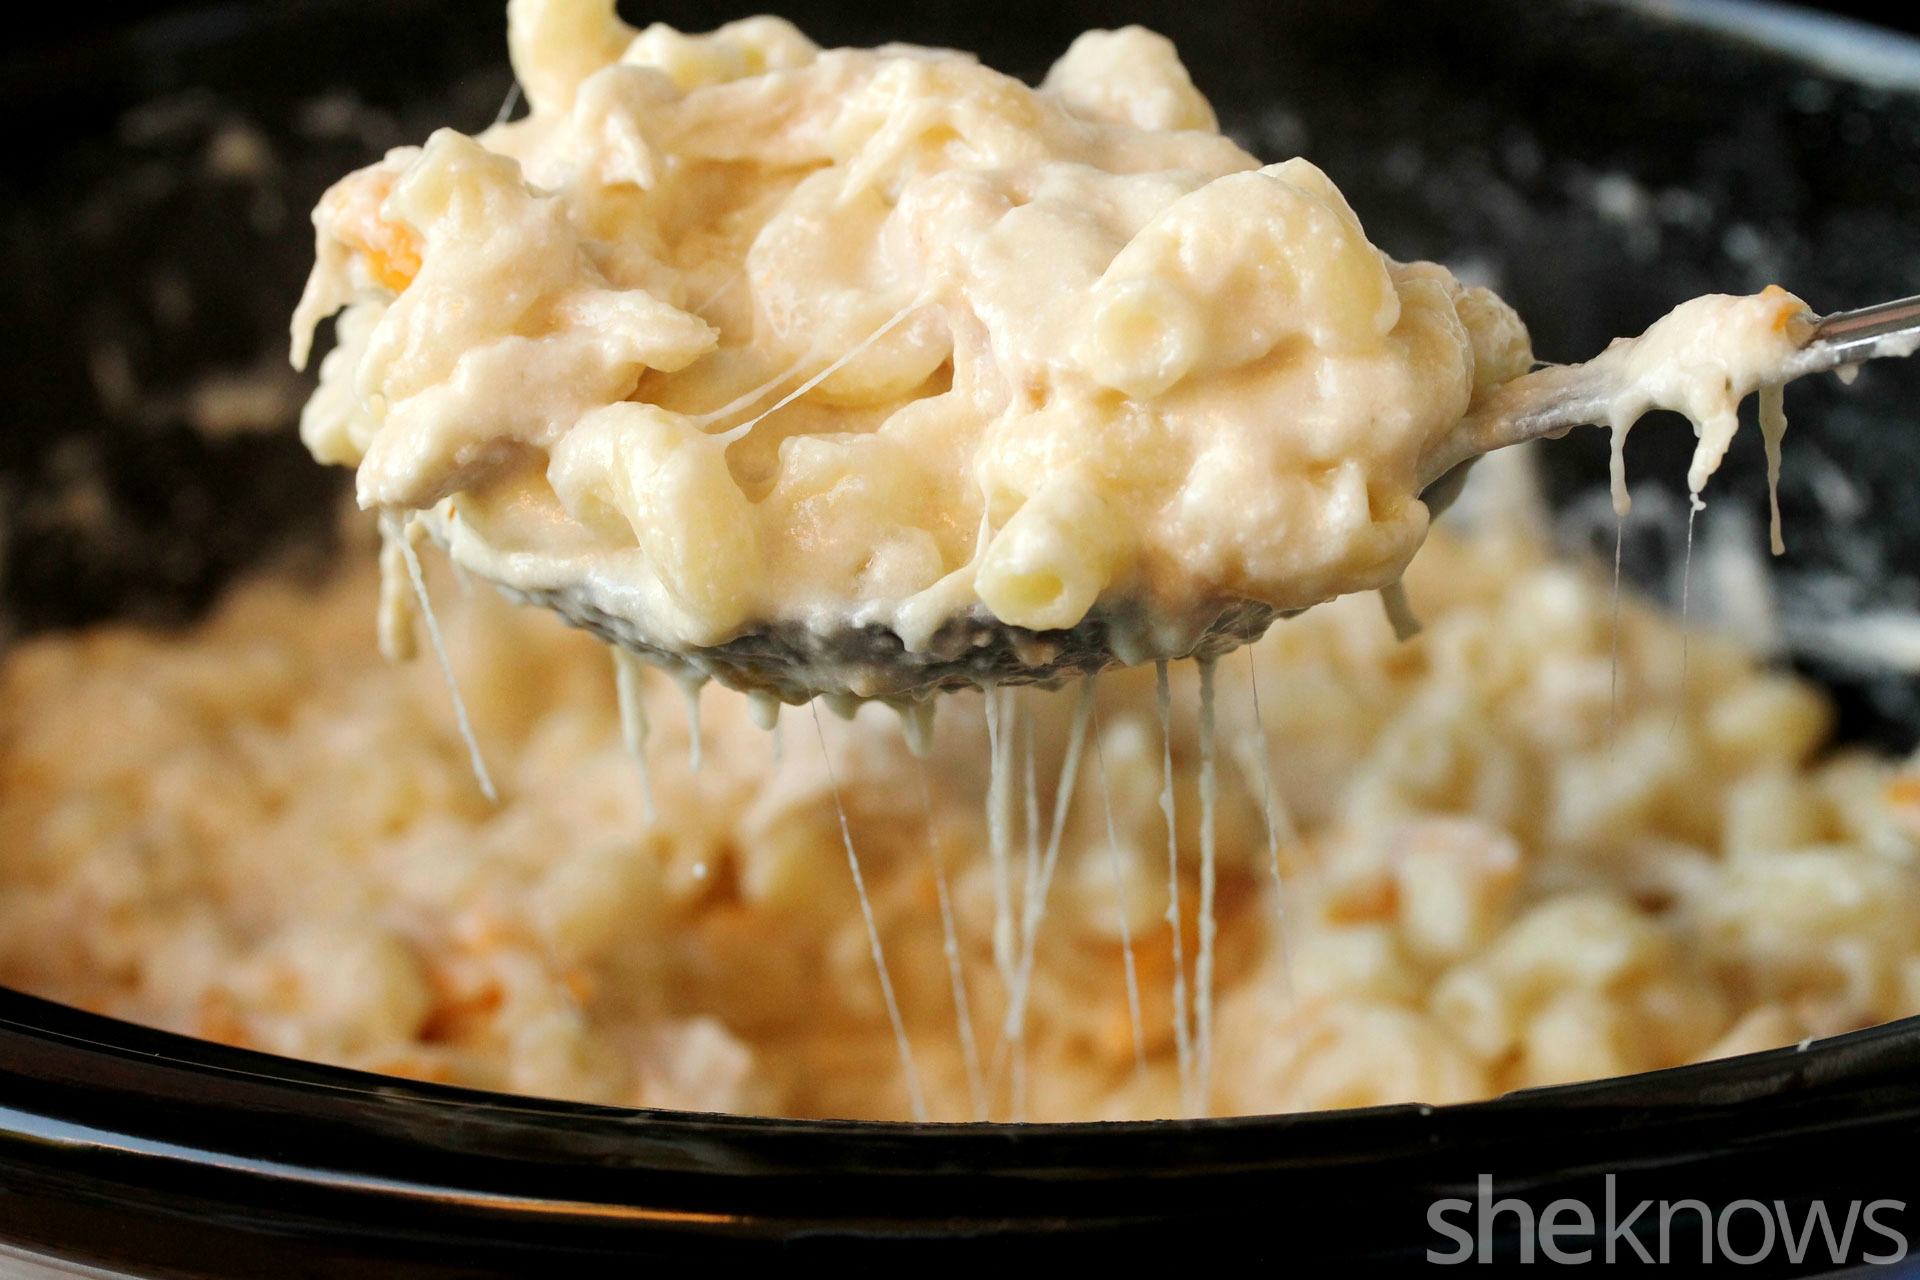 spoon-of-macaroni-and-cheese